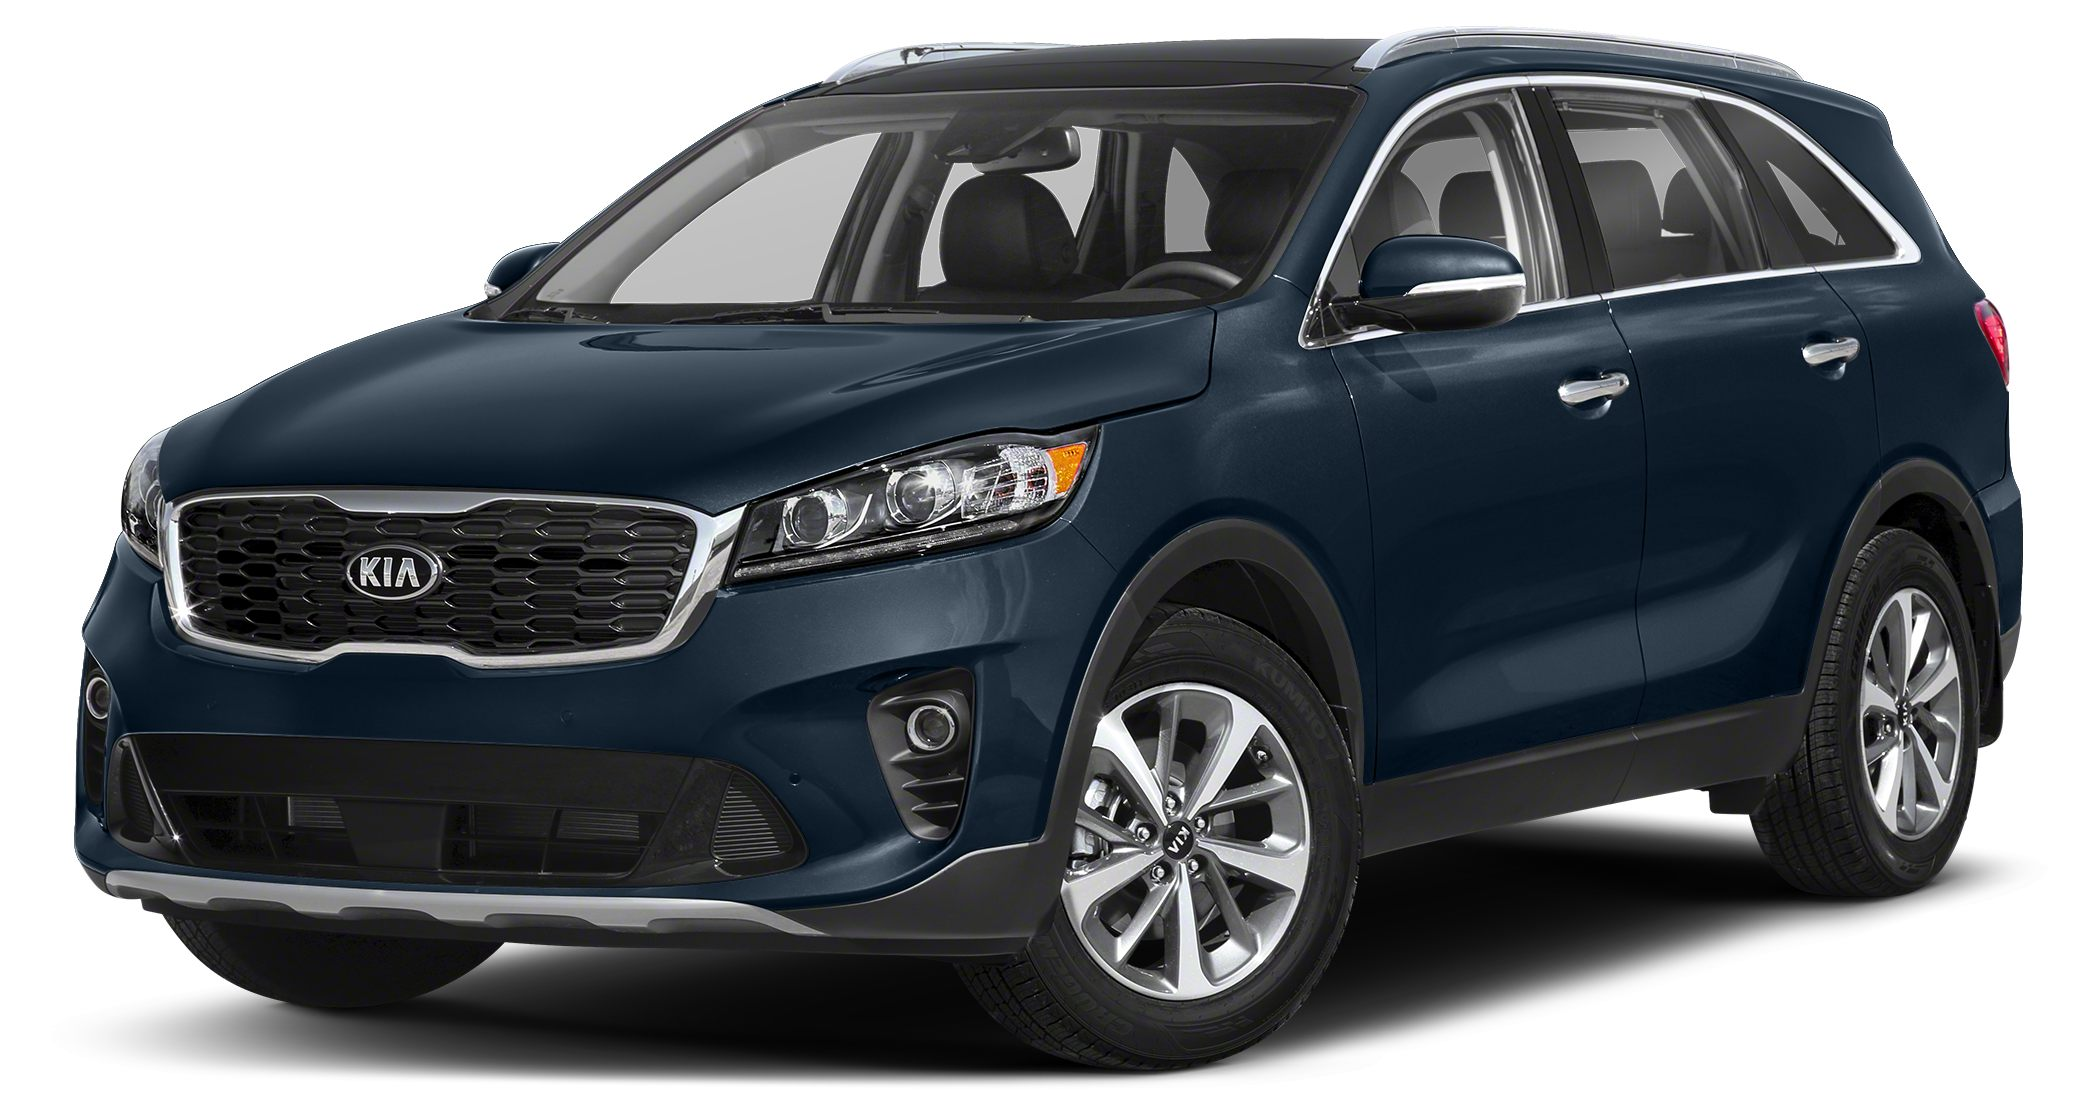 2019 Kia Sorento SX Zoom Zoom Zoom SAVE AT THE PUMP 26 MPG Hwy Want to feel like youve won